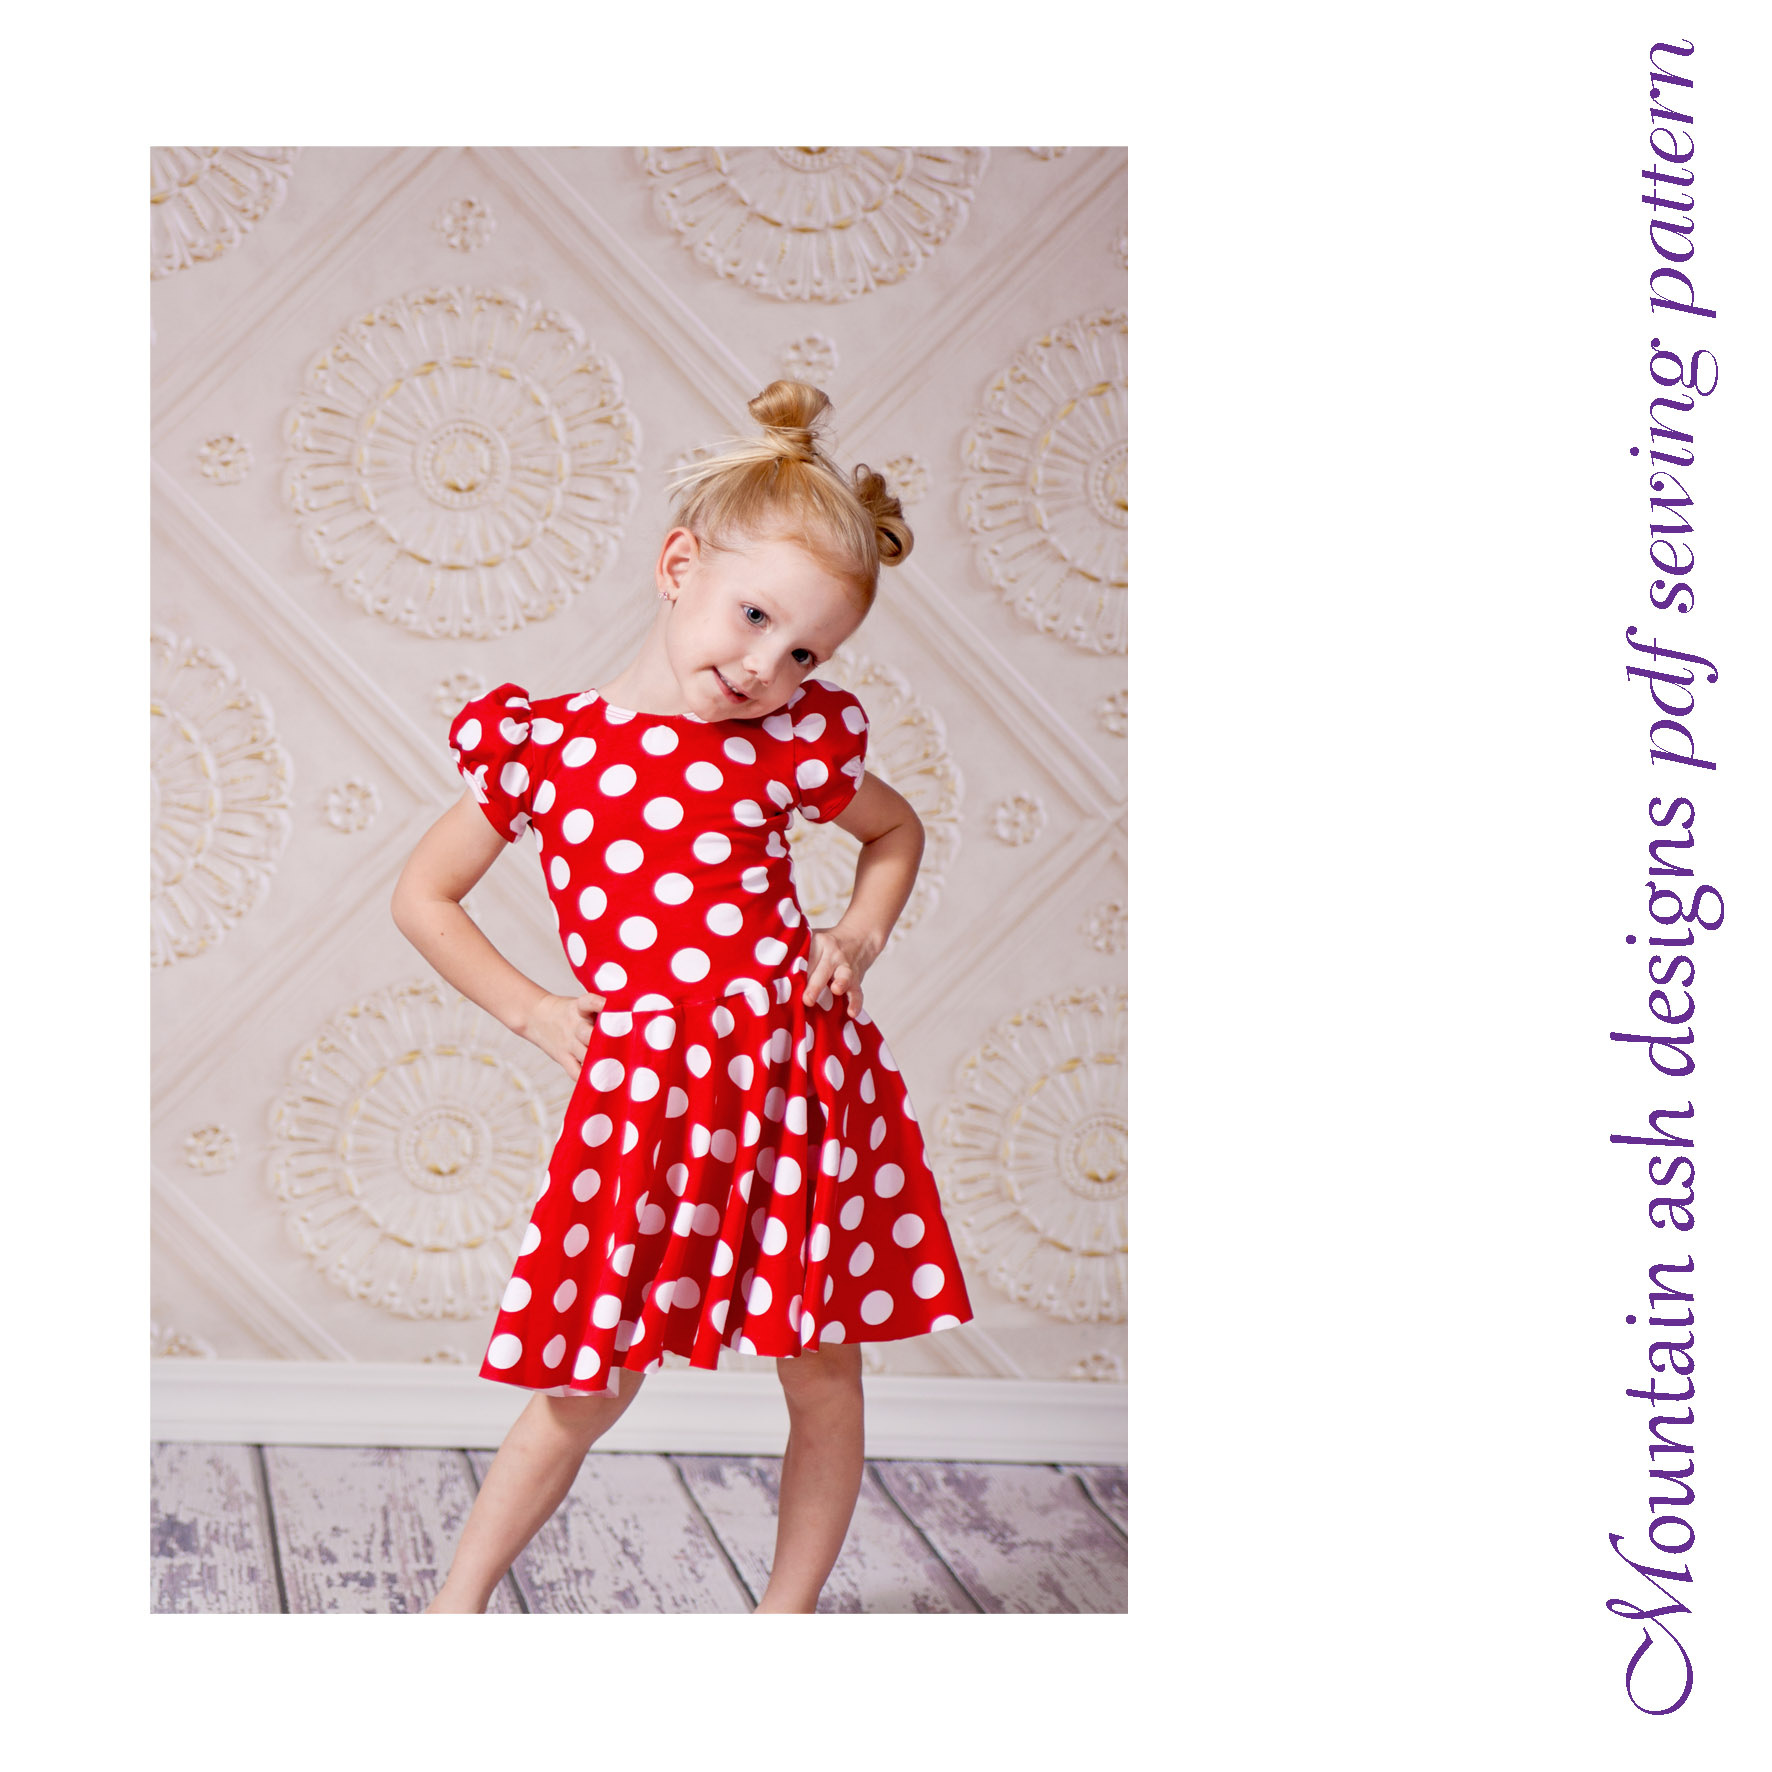 Storybook Dress Dance Costume Sewing Pattern in Girls Sizes 1-14